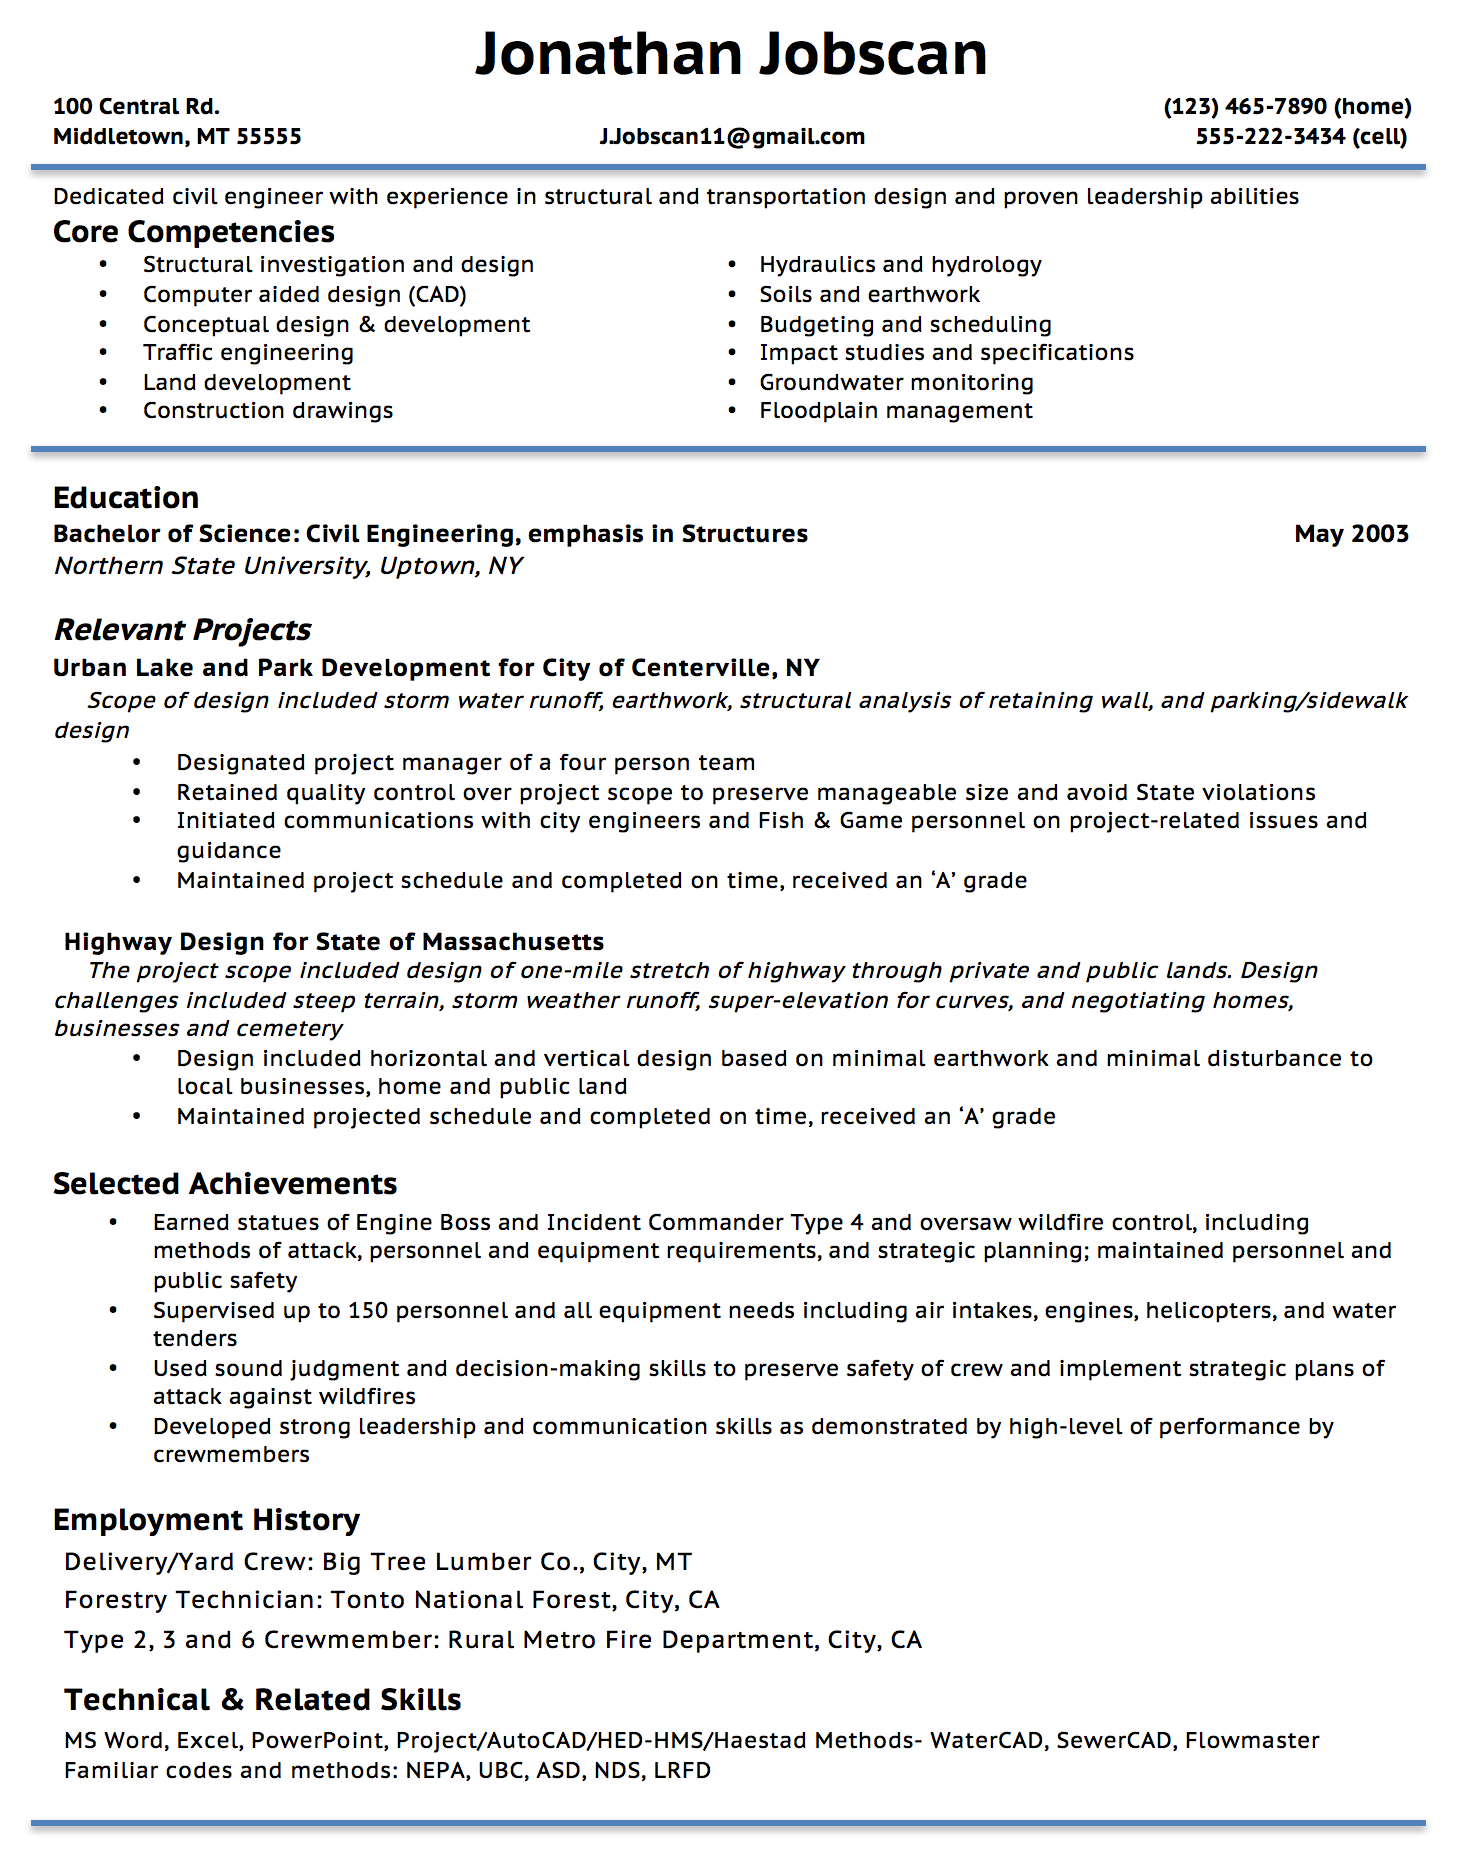 Opposenewapstandardsus  Gorgeous Resume Writing Guide  Jobscan With Licious Example Of A Functional Resume Format With Amusing Strong Verbs For Resume Also Extracurricular Activities Resume In Addition Create Free Resume Online And Job Resume Objective As Well As Making A Resume Online Additionally Graduate School Resume Template From Jobscanco With Opposenewapstandardsus  Licious Resume Writing Guide  Jobscan With Amusing Example Of A Functional Resume Format And Gorgeous Strong Verbs For Resume Also Extracurricular Activities Resume In Addition Create Free Resume Online From Jobscanco